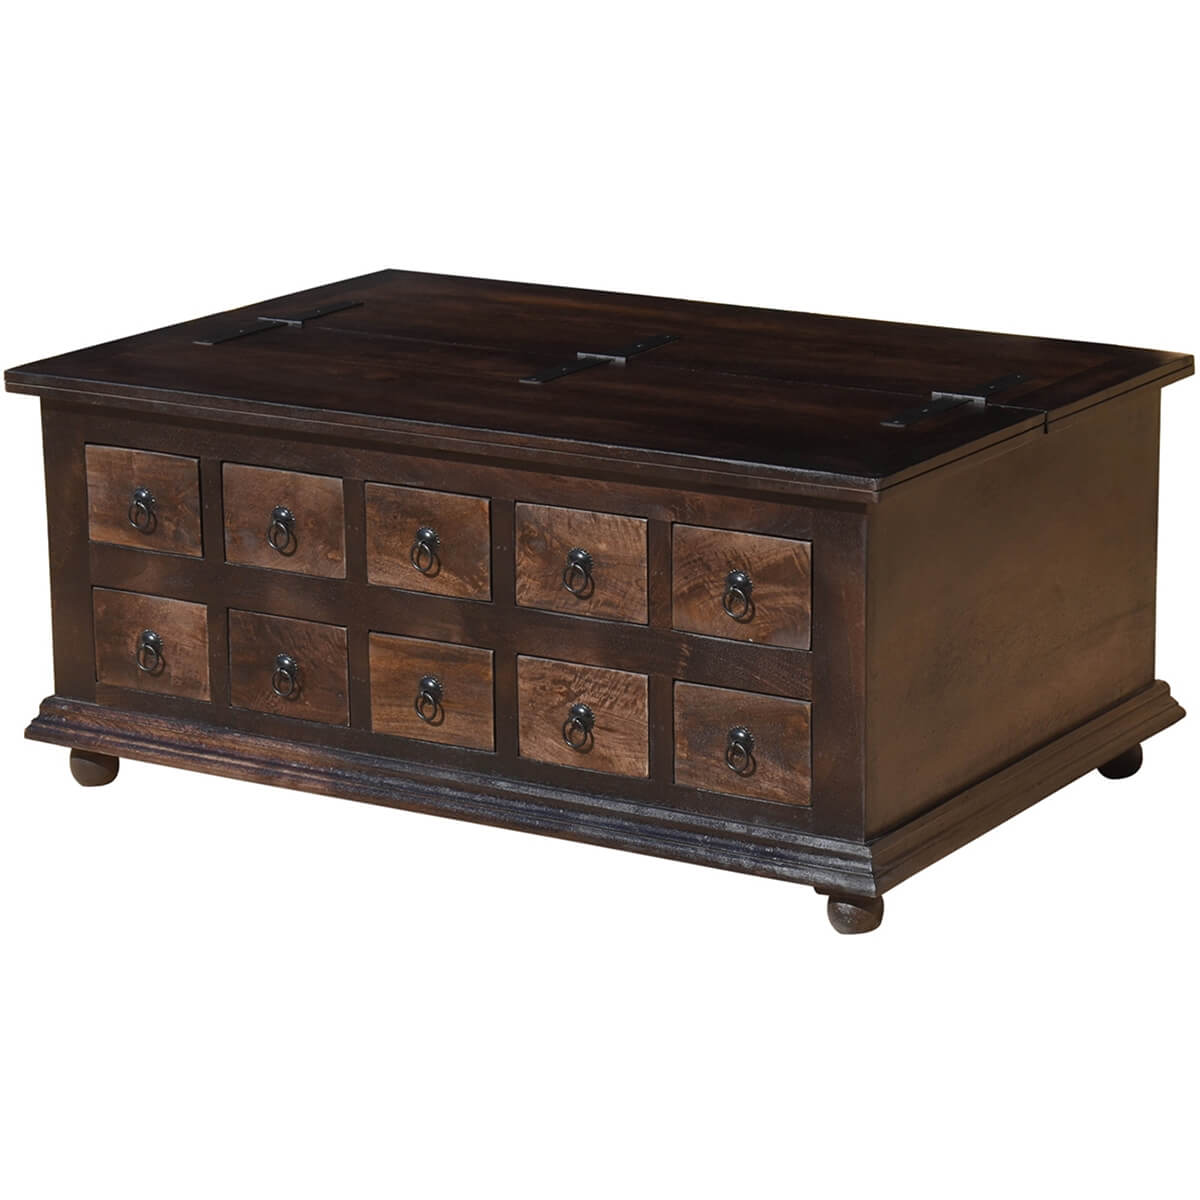 Fantastic Classic Wood Storage Coffee Table with 10 Drawers DP36